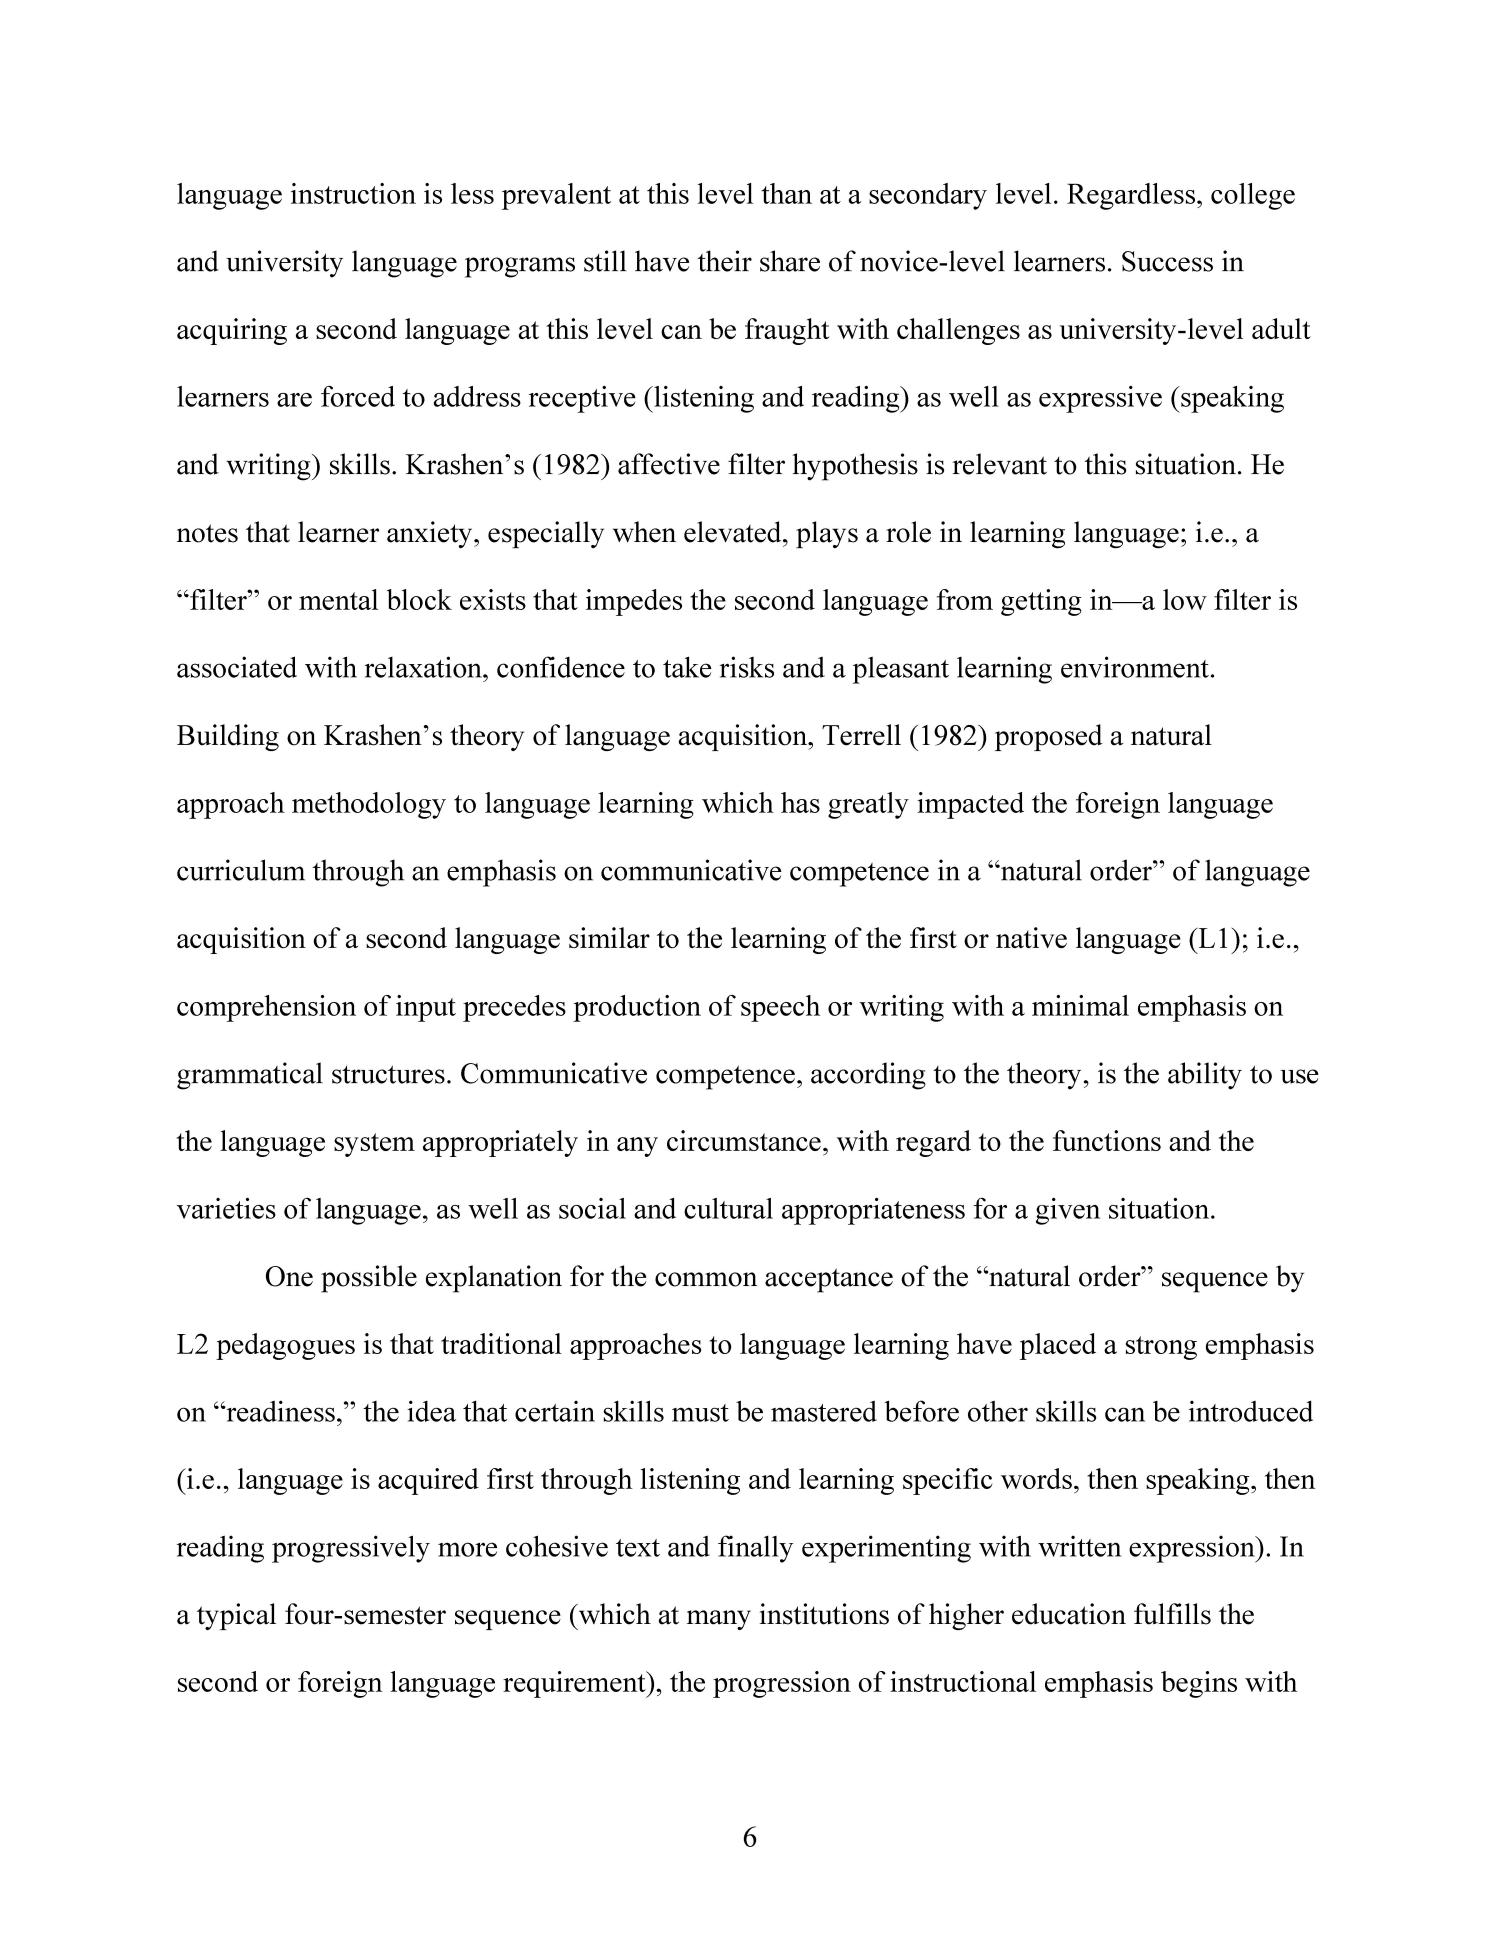 Effects of Technology-Enhanced Language Learning on Second Language Composition of University-Level Intermediate Spanish Students                                                                                                      6